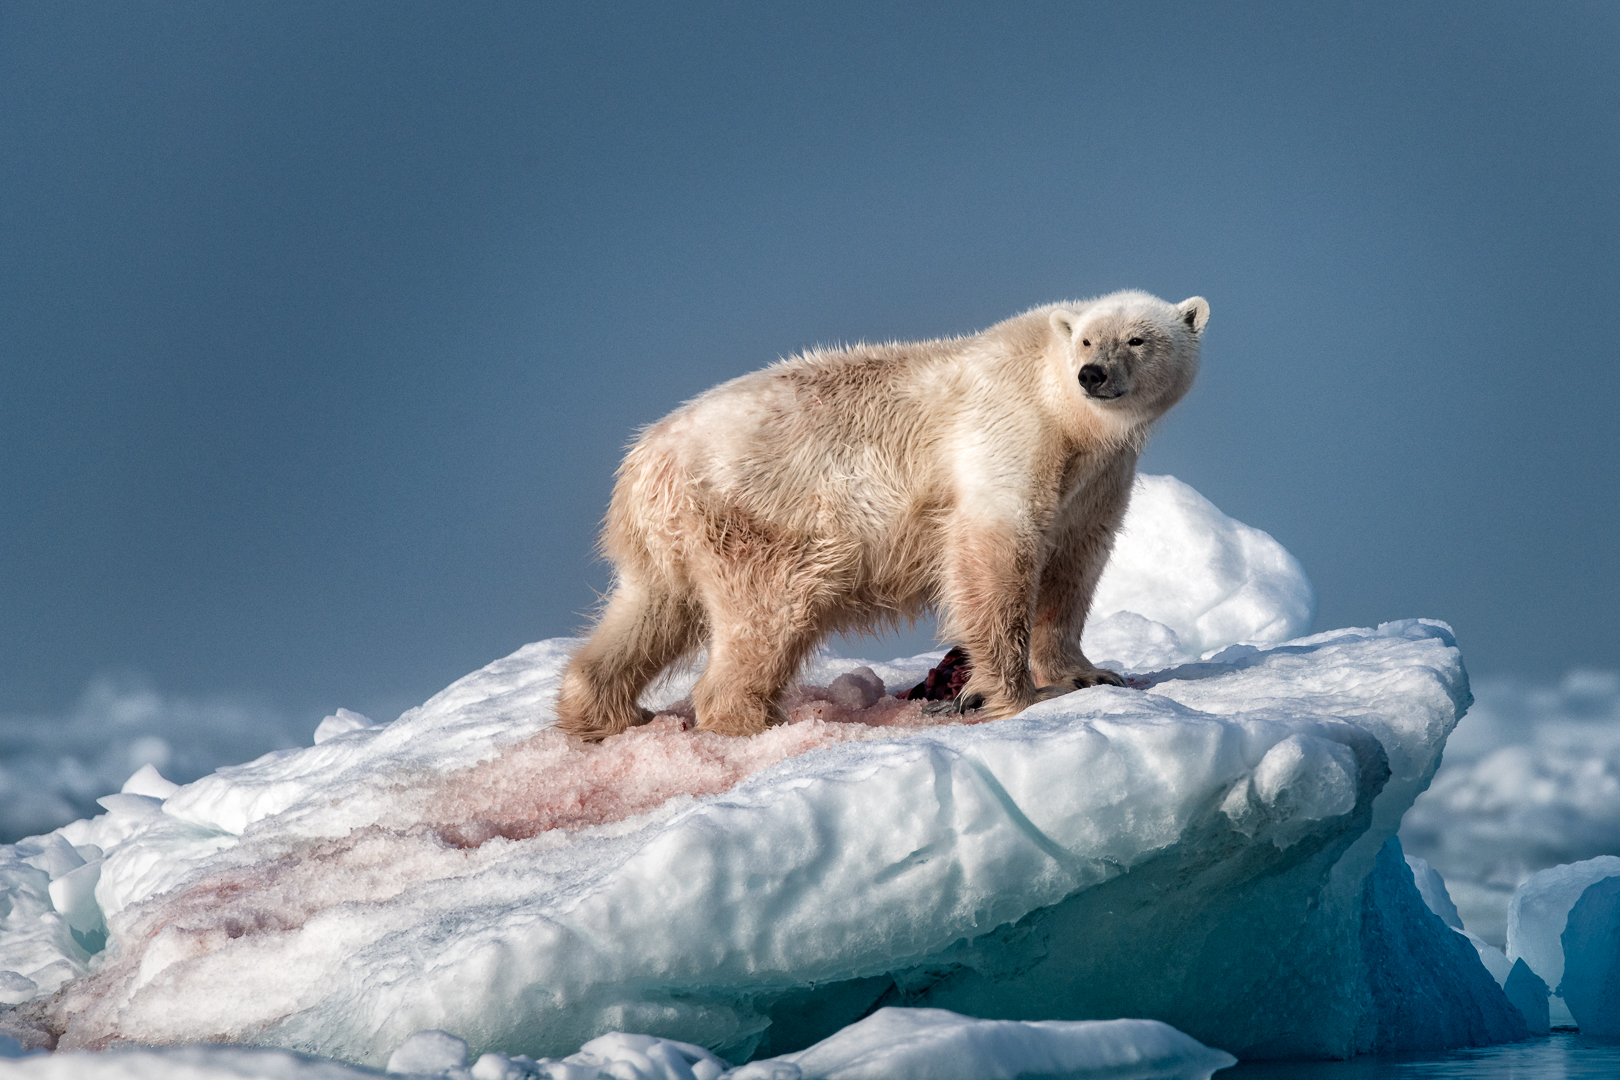 BEAR ON ICE 2_MDS4032.jpg